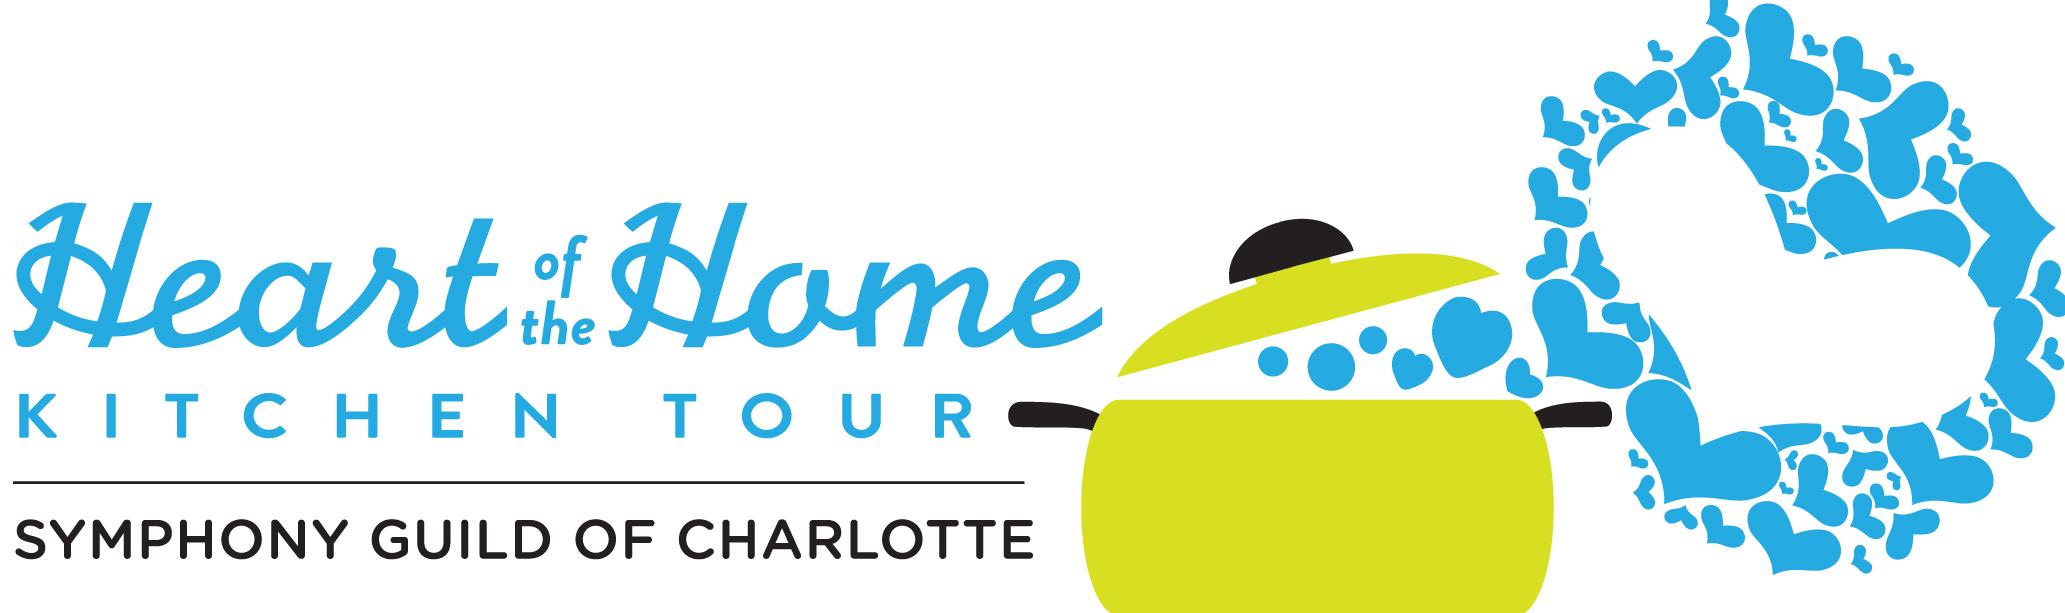 Heart of the Home Kitchen Tour| Charlotte Symphony Orchestra